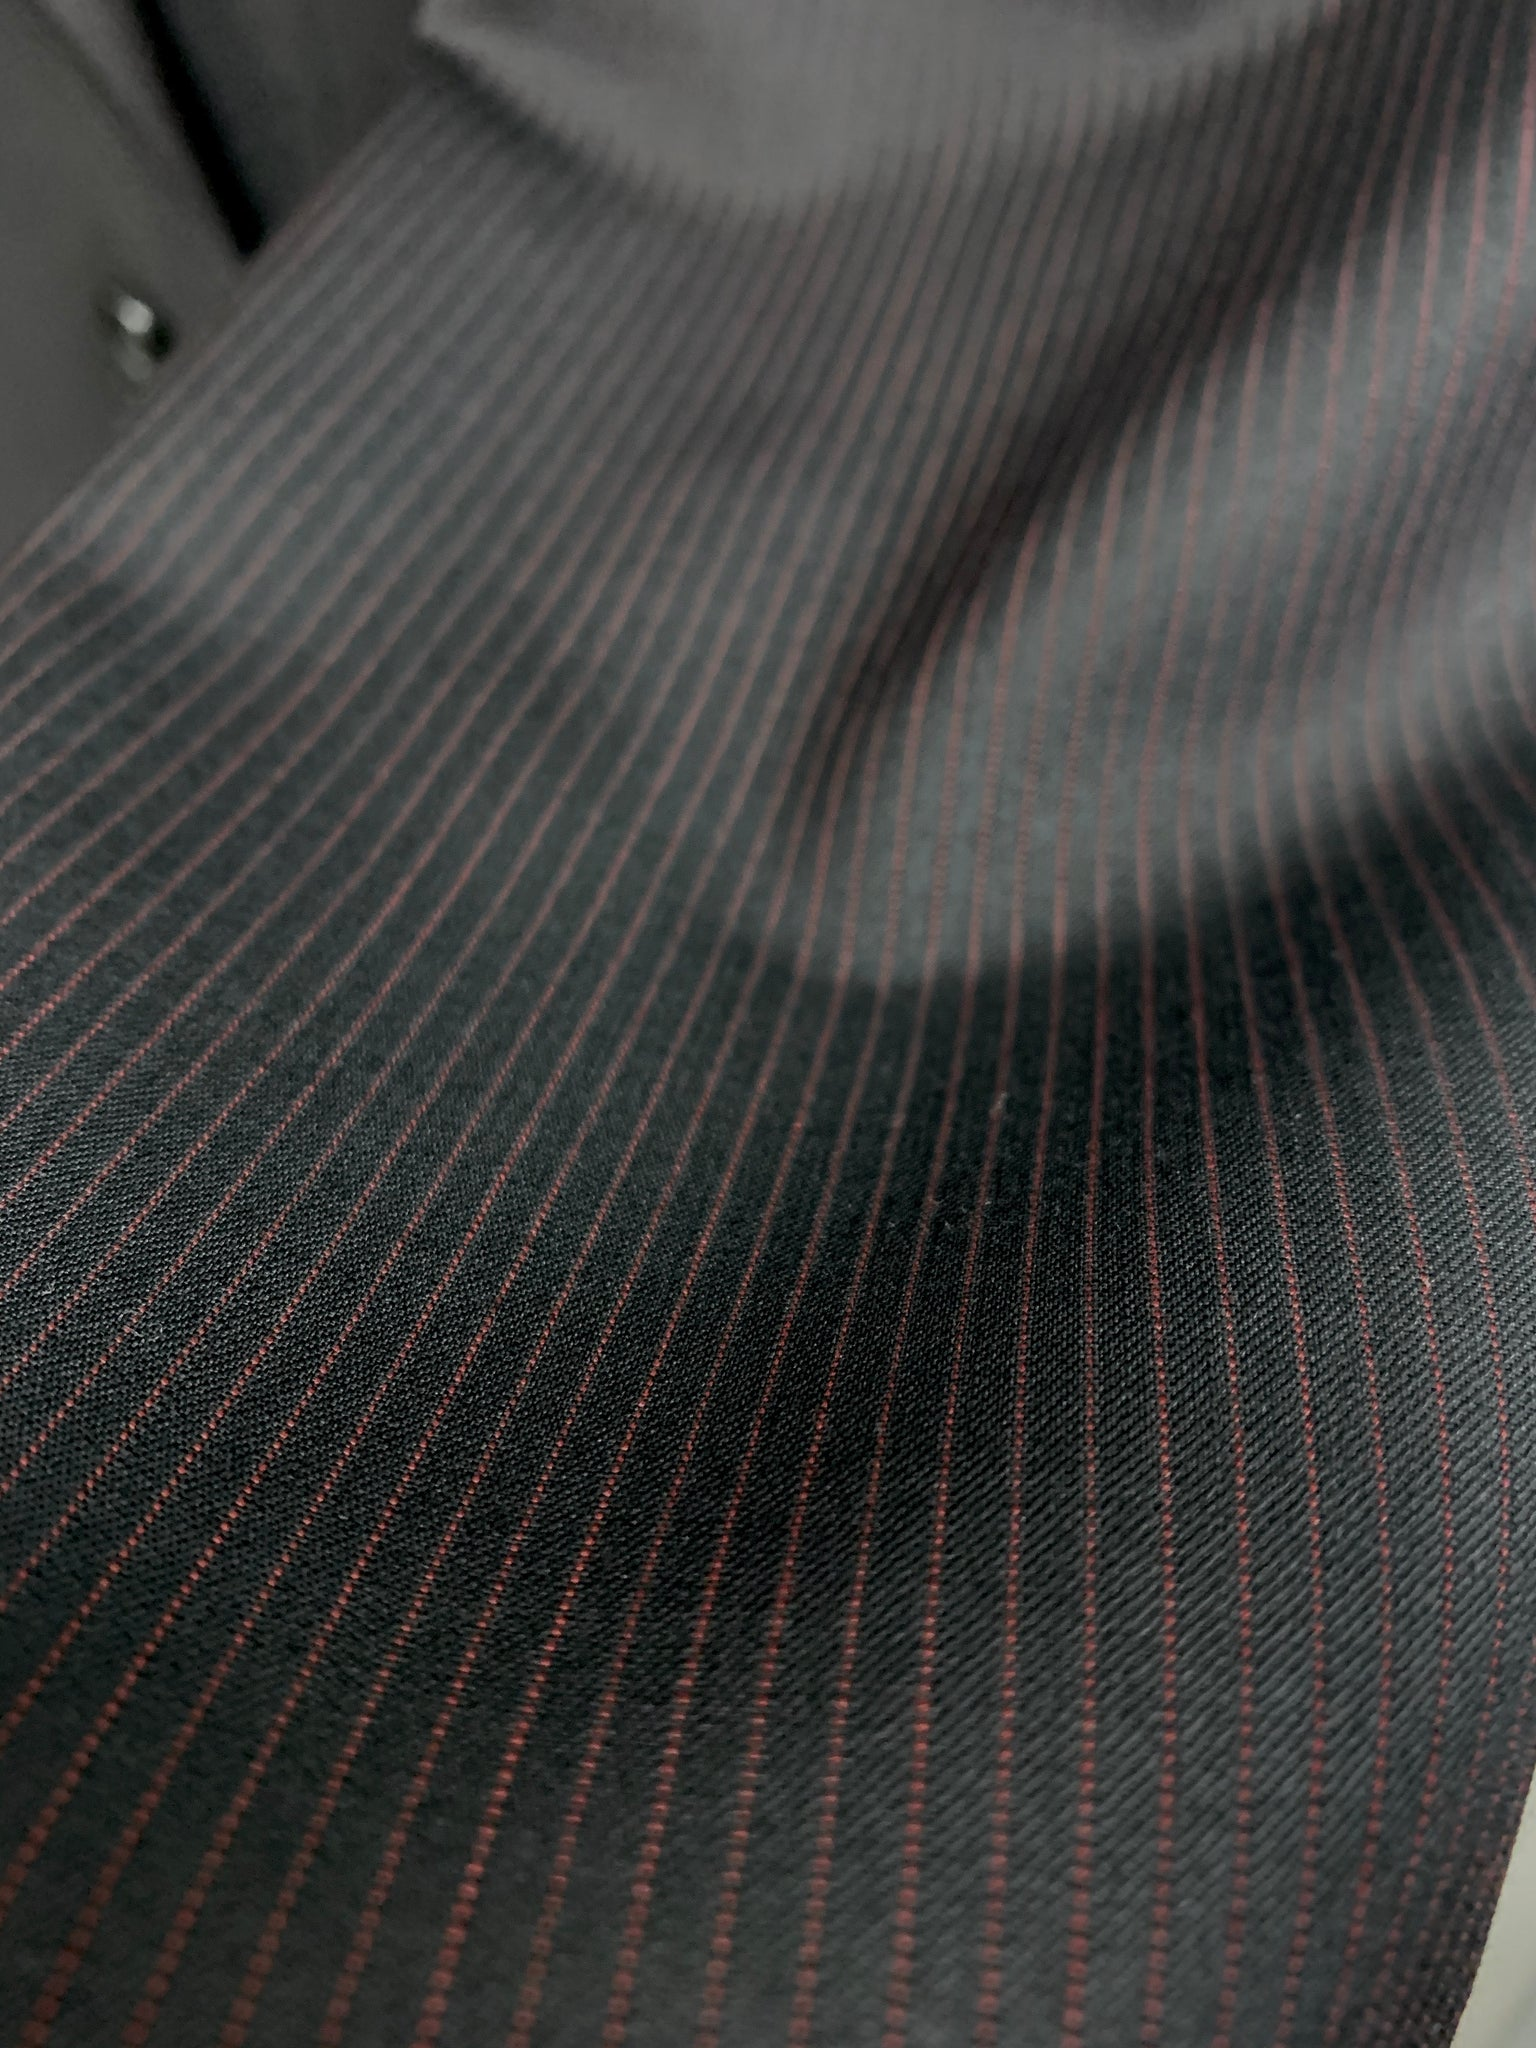 Calvin Klein Suit - (Black w/ Red Pinstripe)